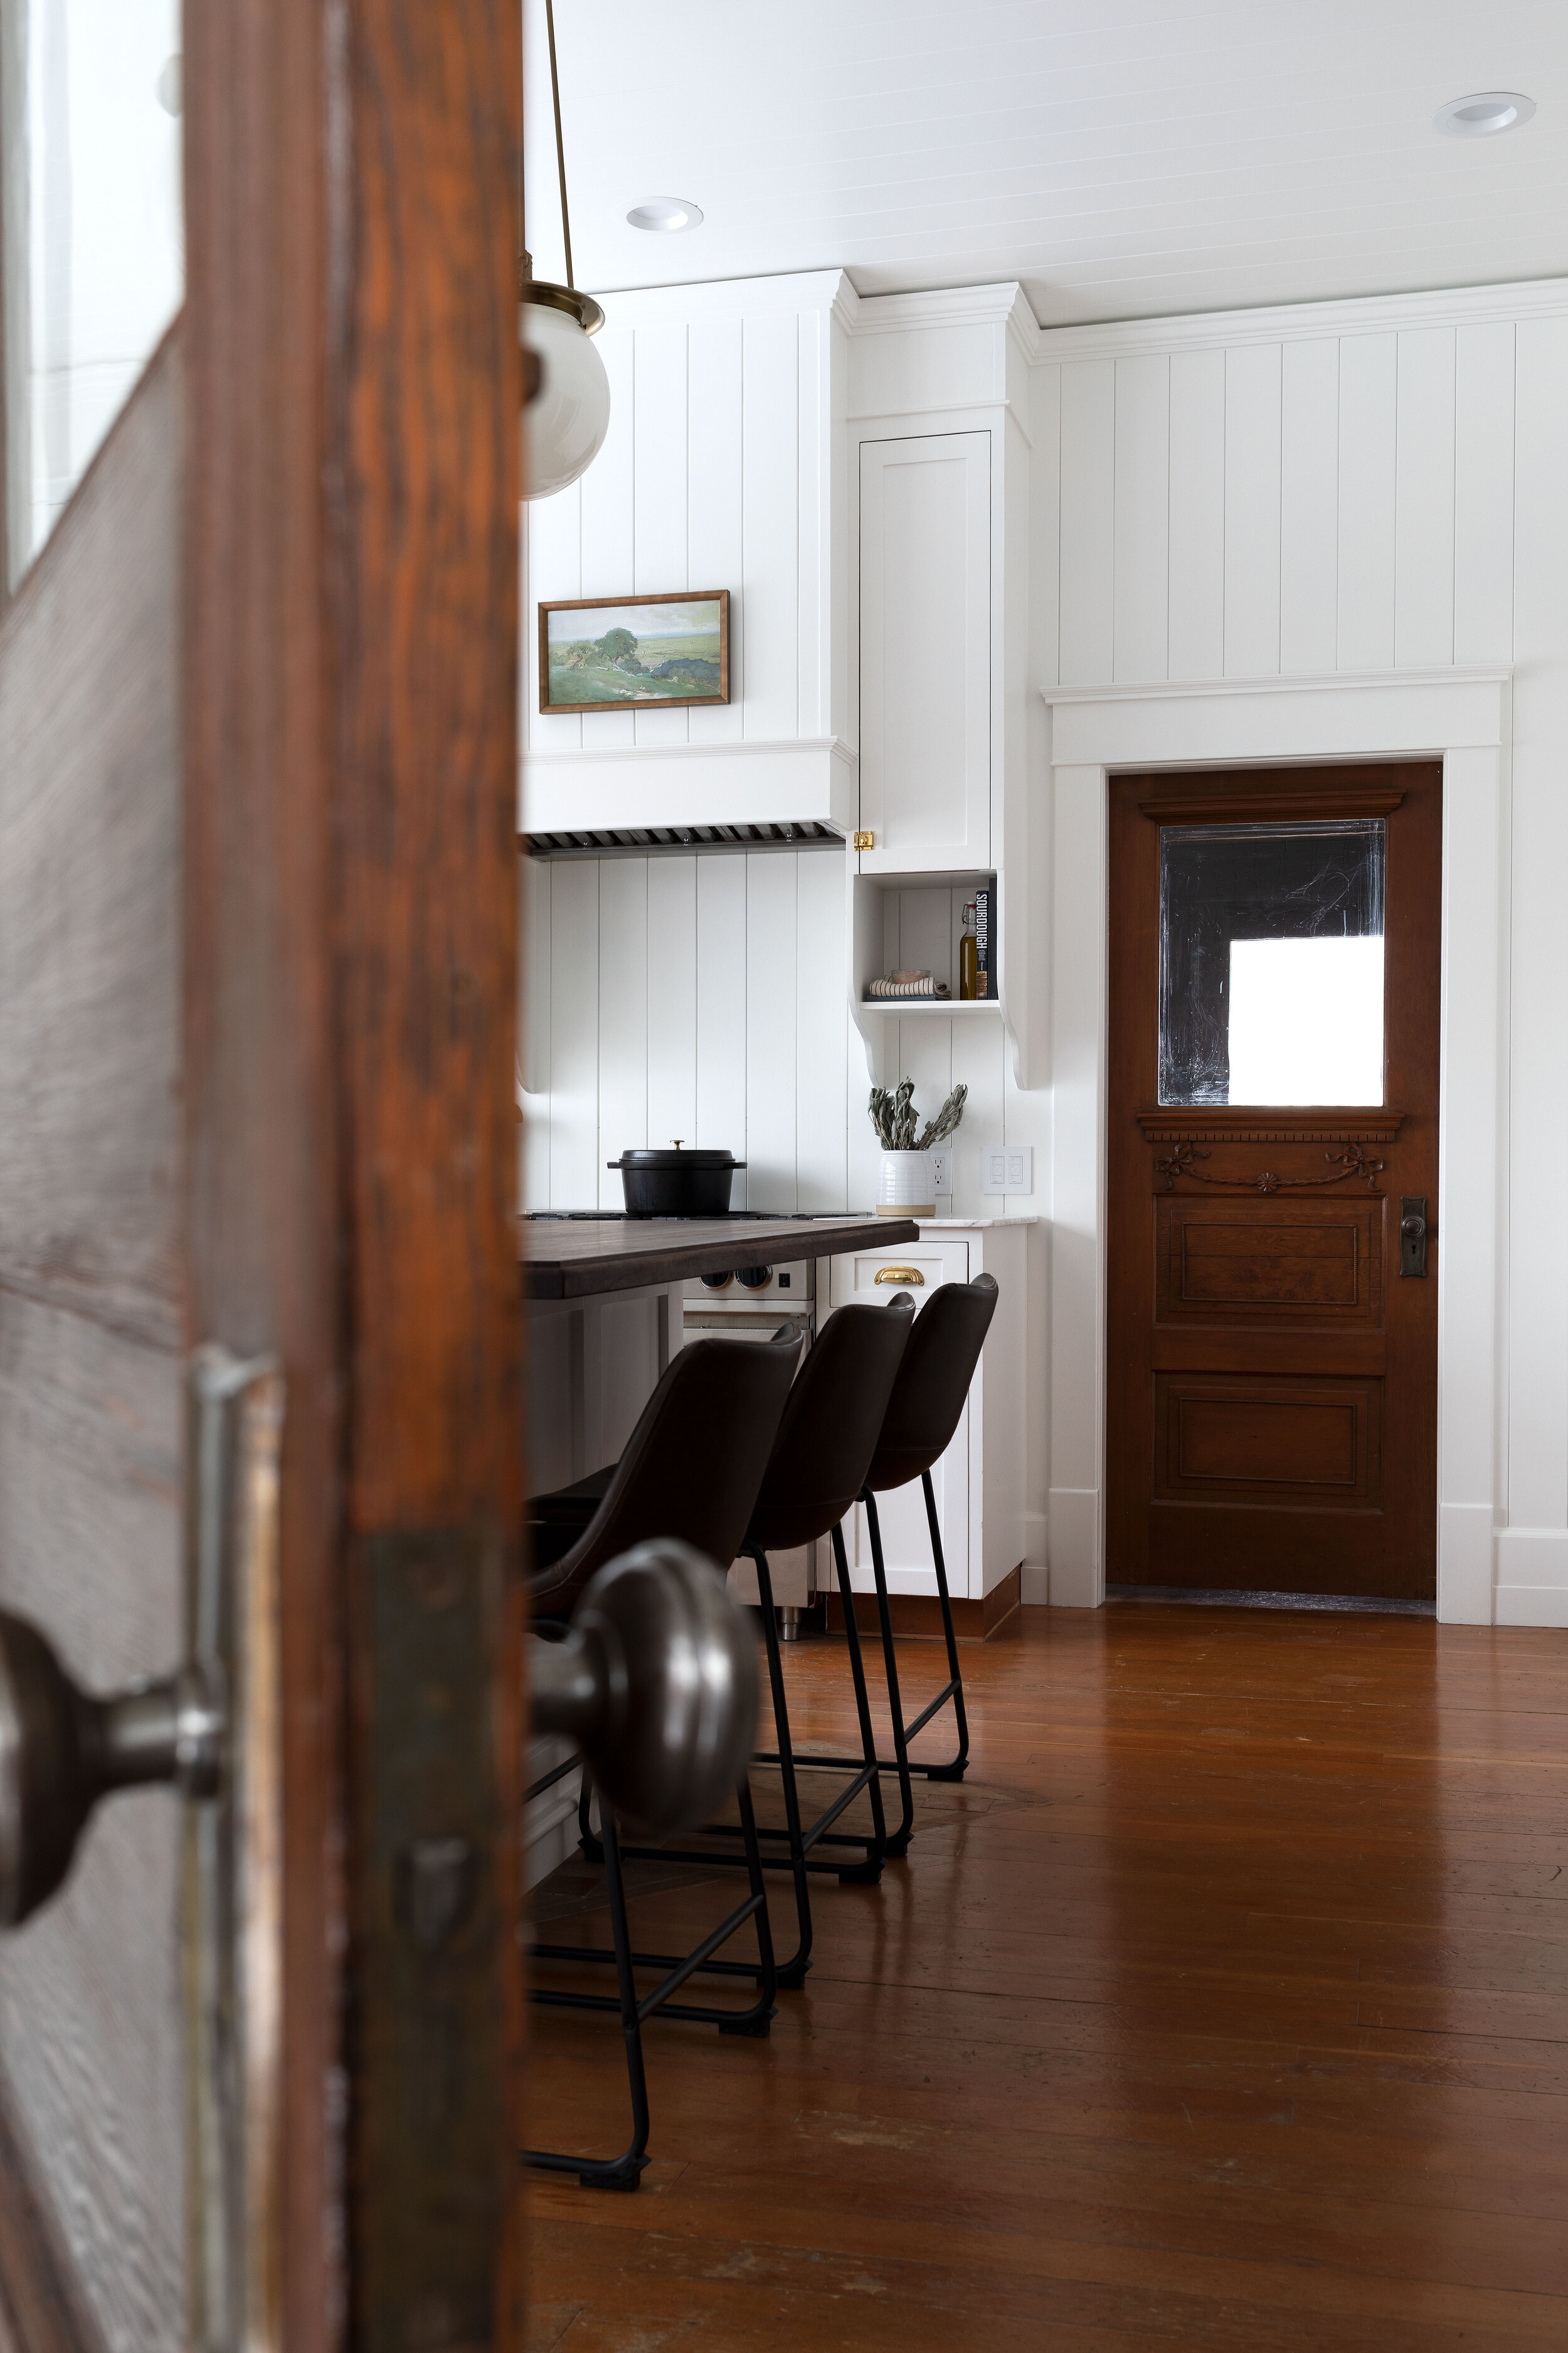 The Grit and Polish - Farmhouse Country Kitchen Reveal 3.0 35 web.jpg